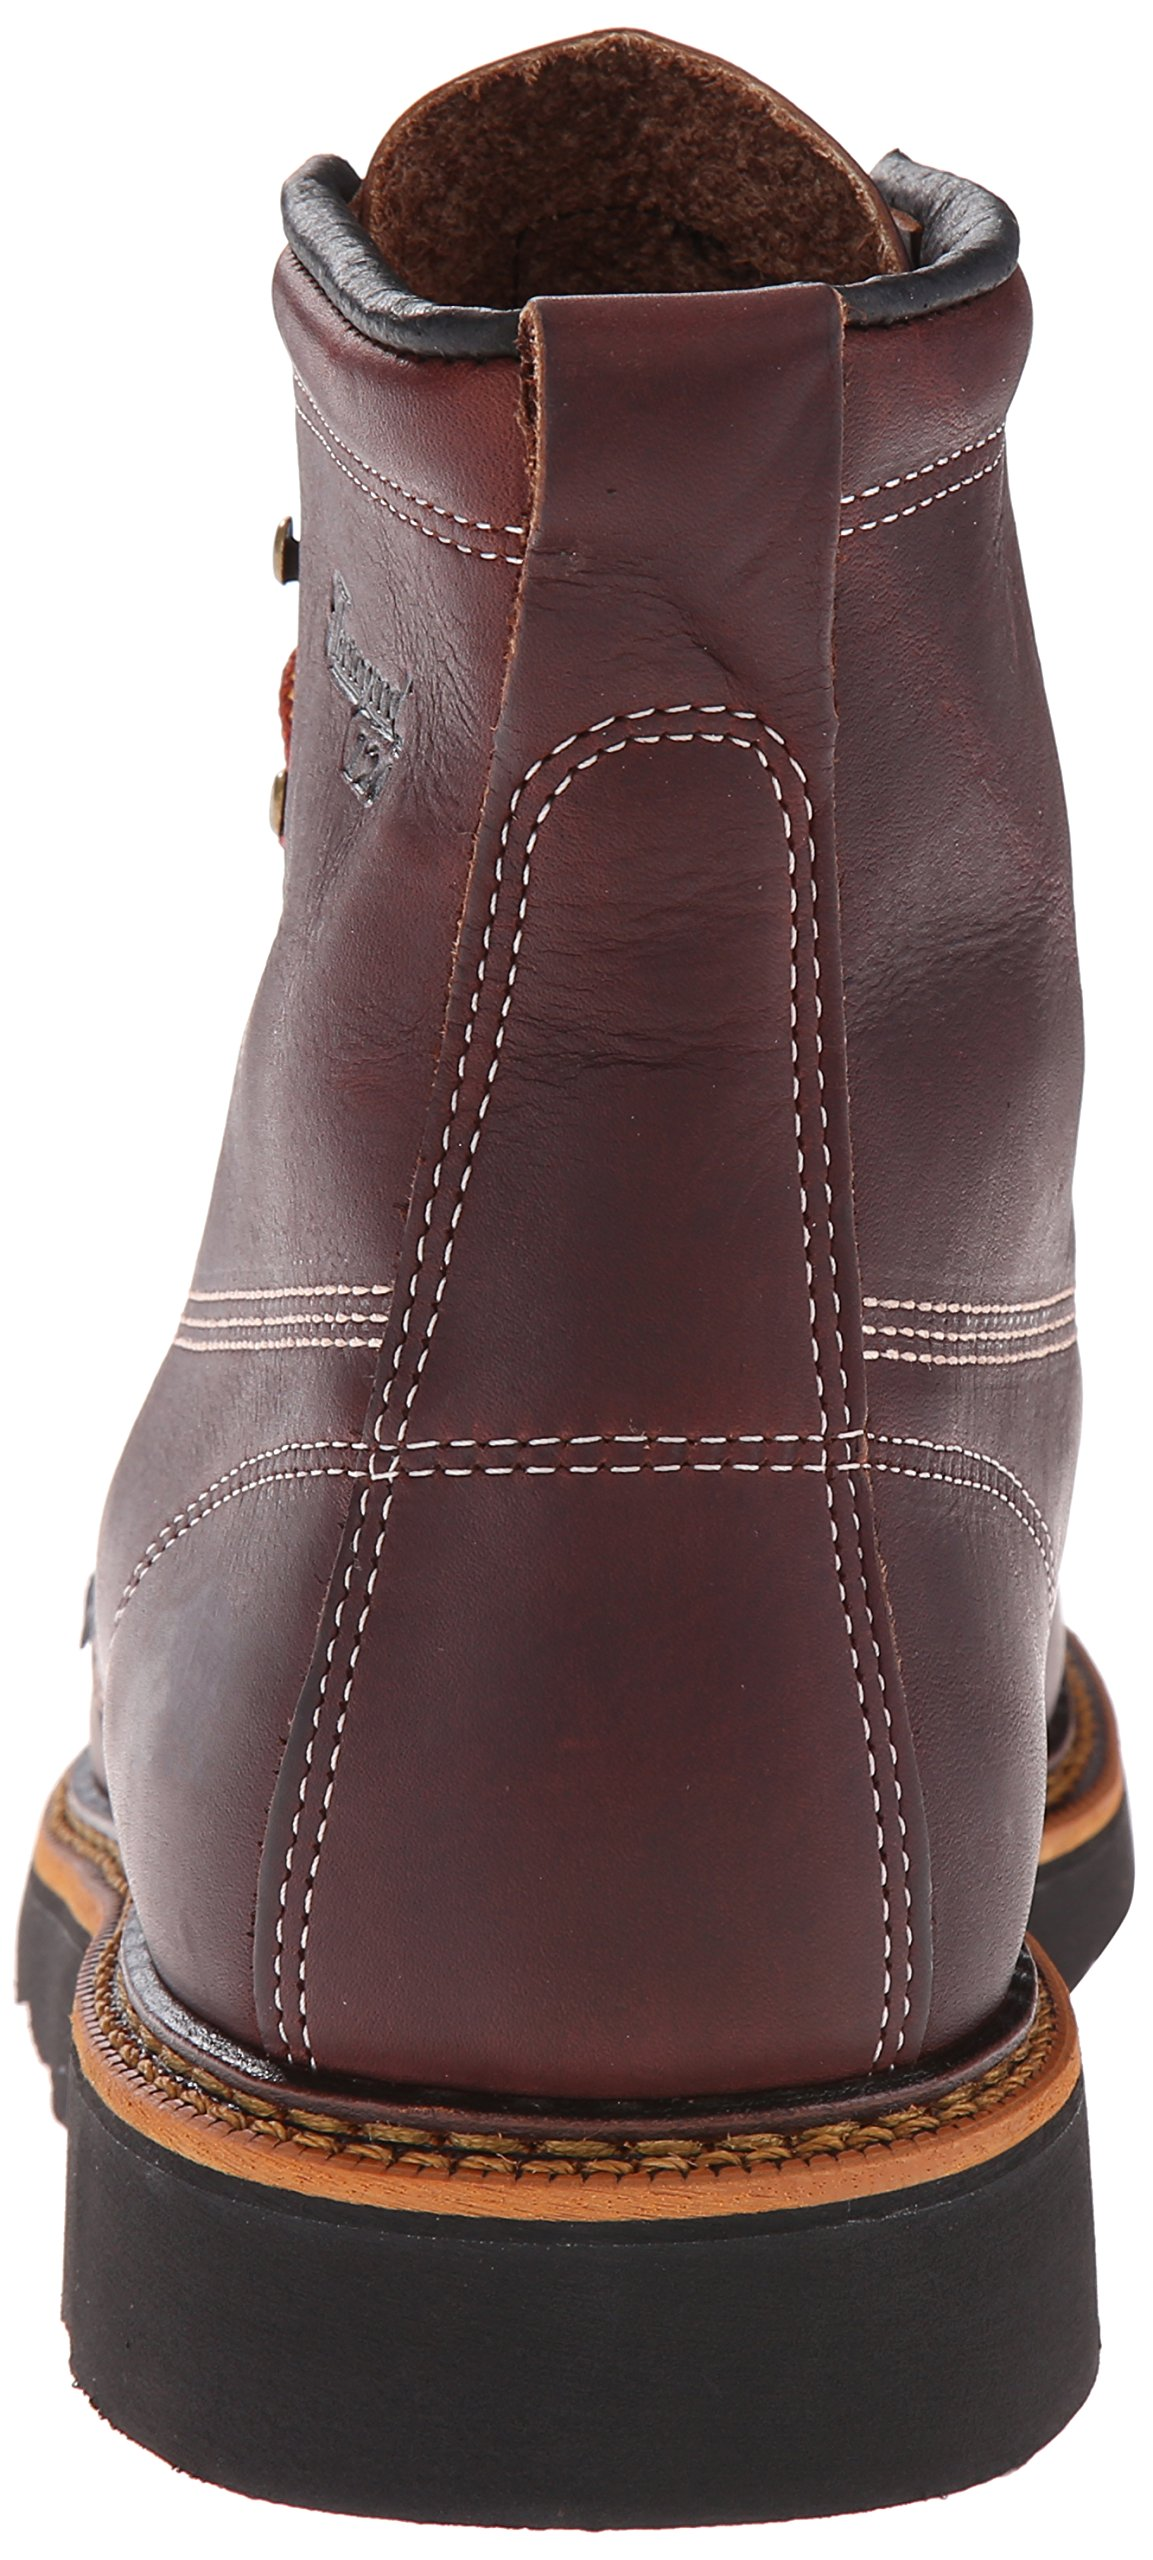 Thorogood-American-Heritage-Men-039-s-6-034-Moc-Toe-Max-Wedge-Non-Safety-Boots thumbnail 10